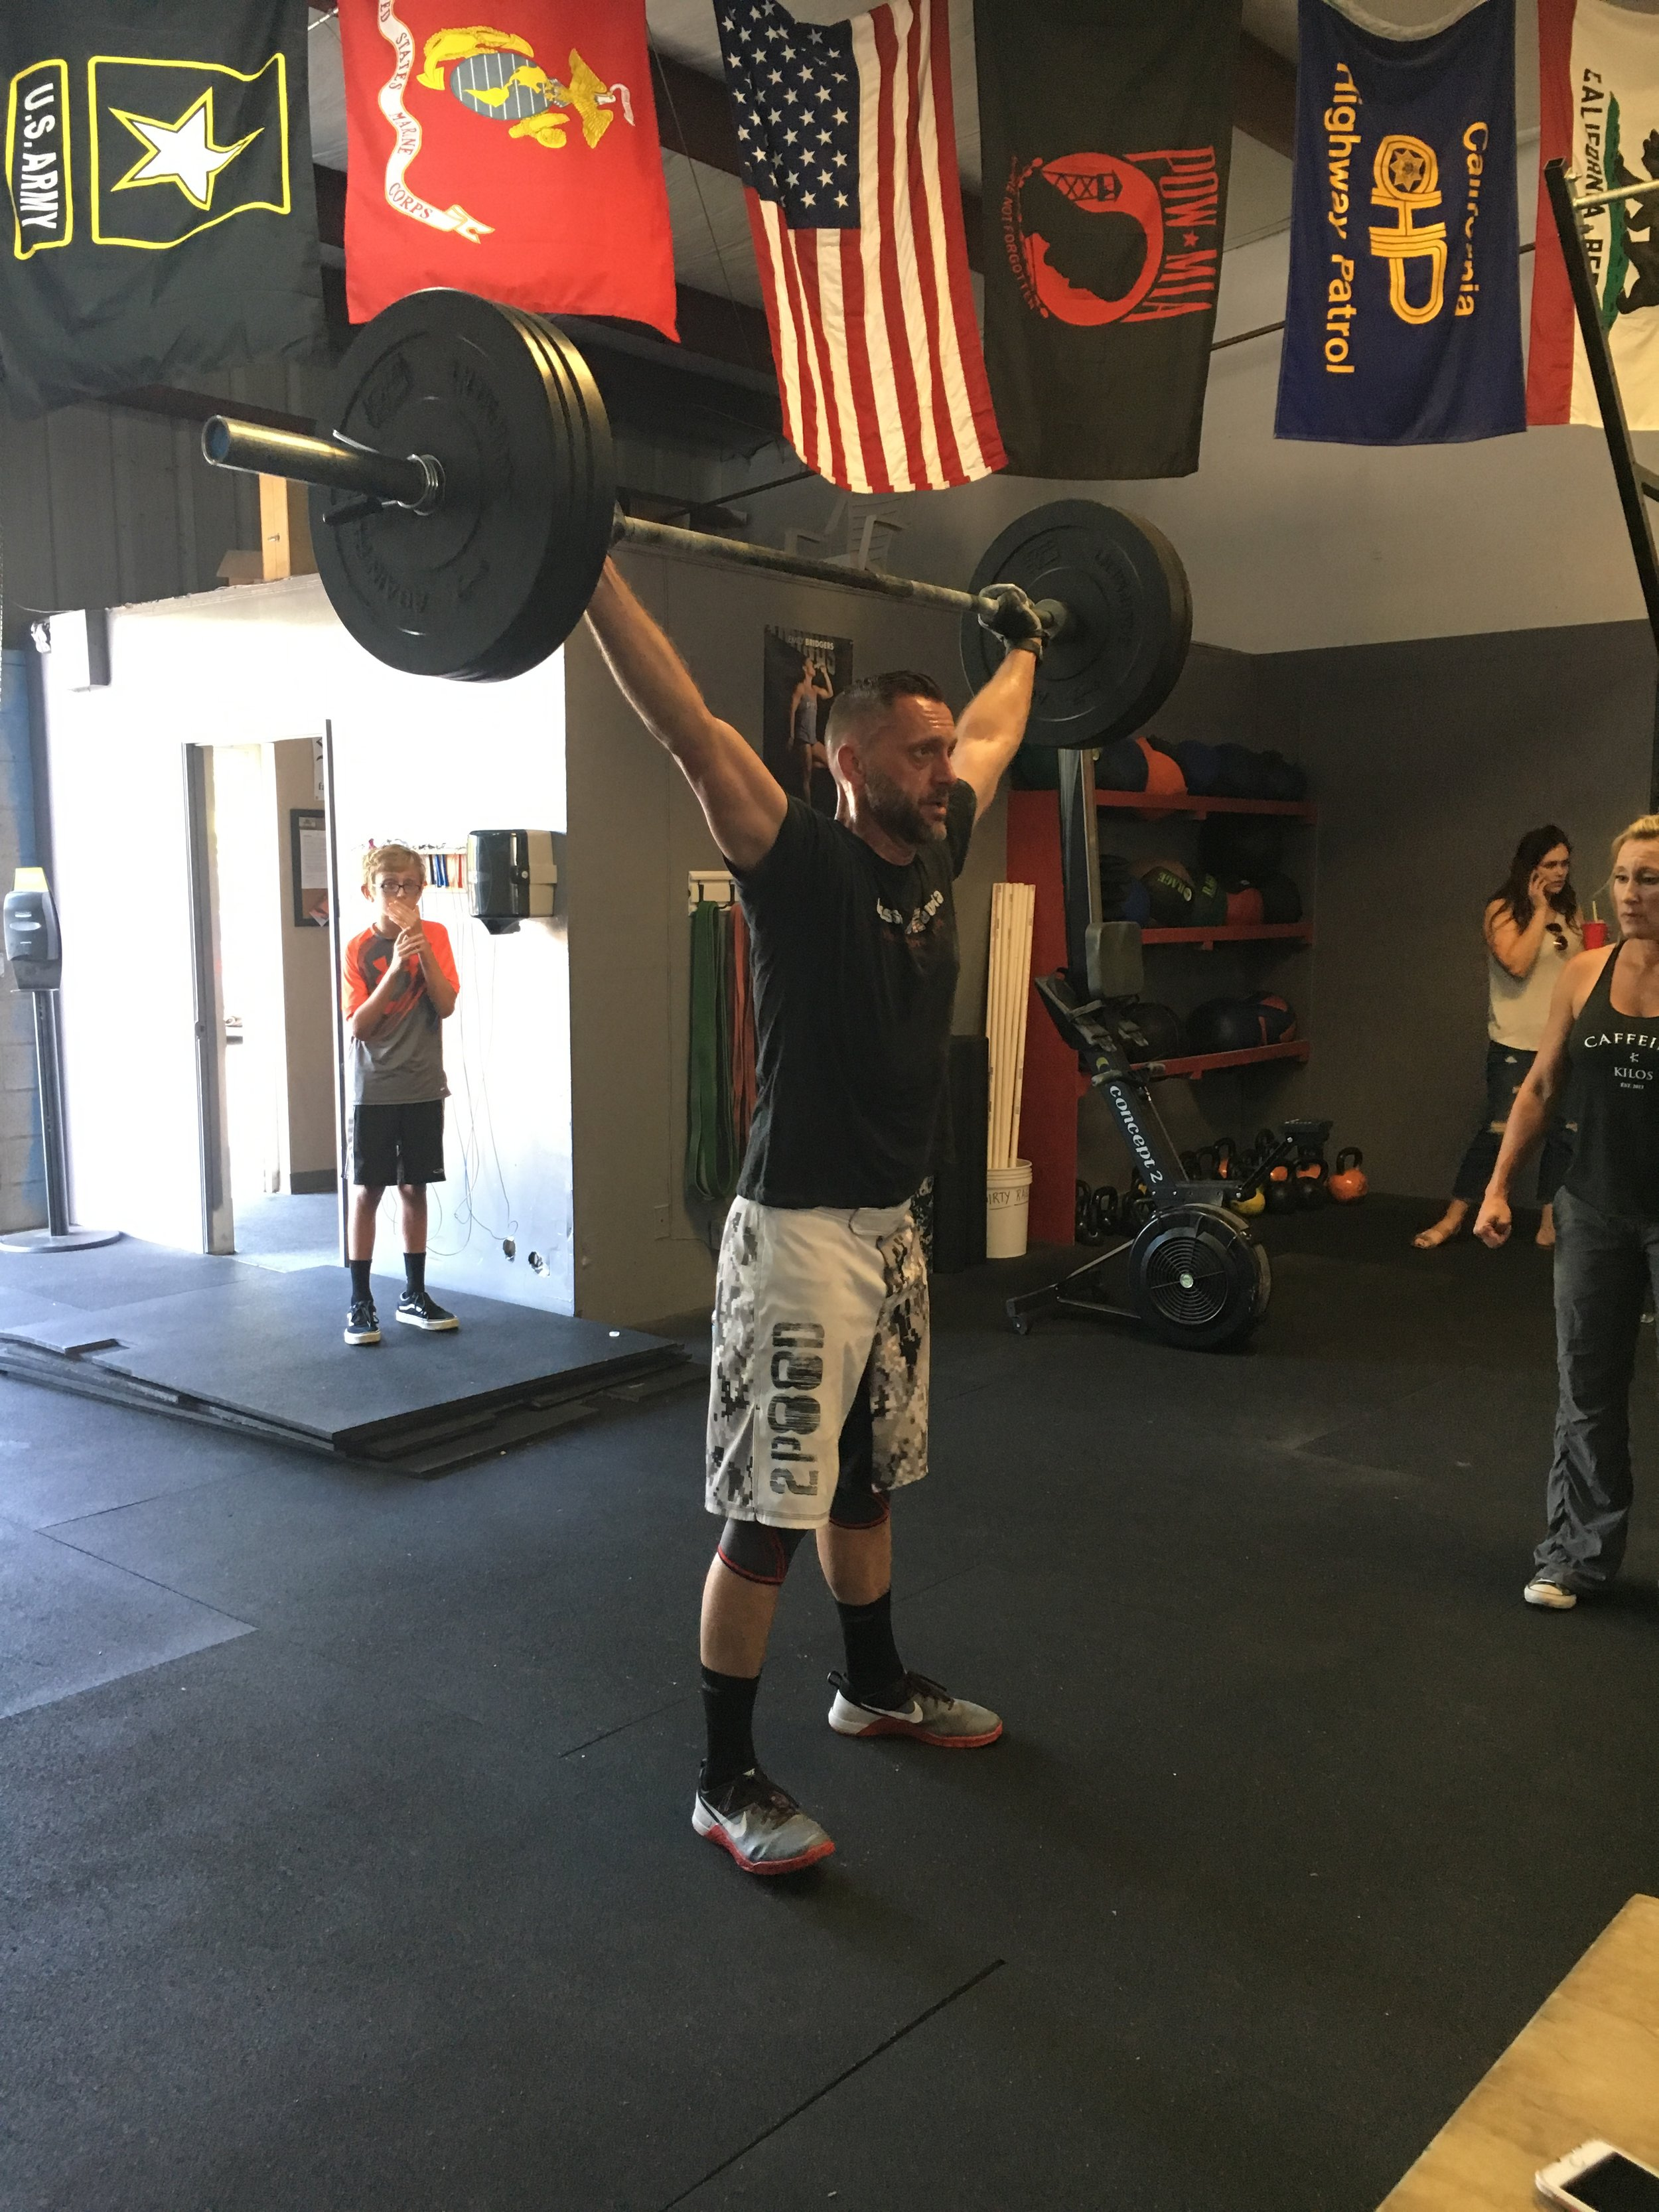 Mike Postma, Coach - I have been doing CrossFit for 6 years.I have been coaching for 5 years.I love connecting with others through fitness and the extra motivation of being surrounded by other athletes during a workout.Ice cream!CrossFit Level 1 trainer and CrossFit kids certification